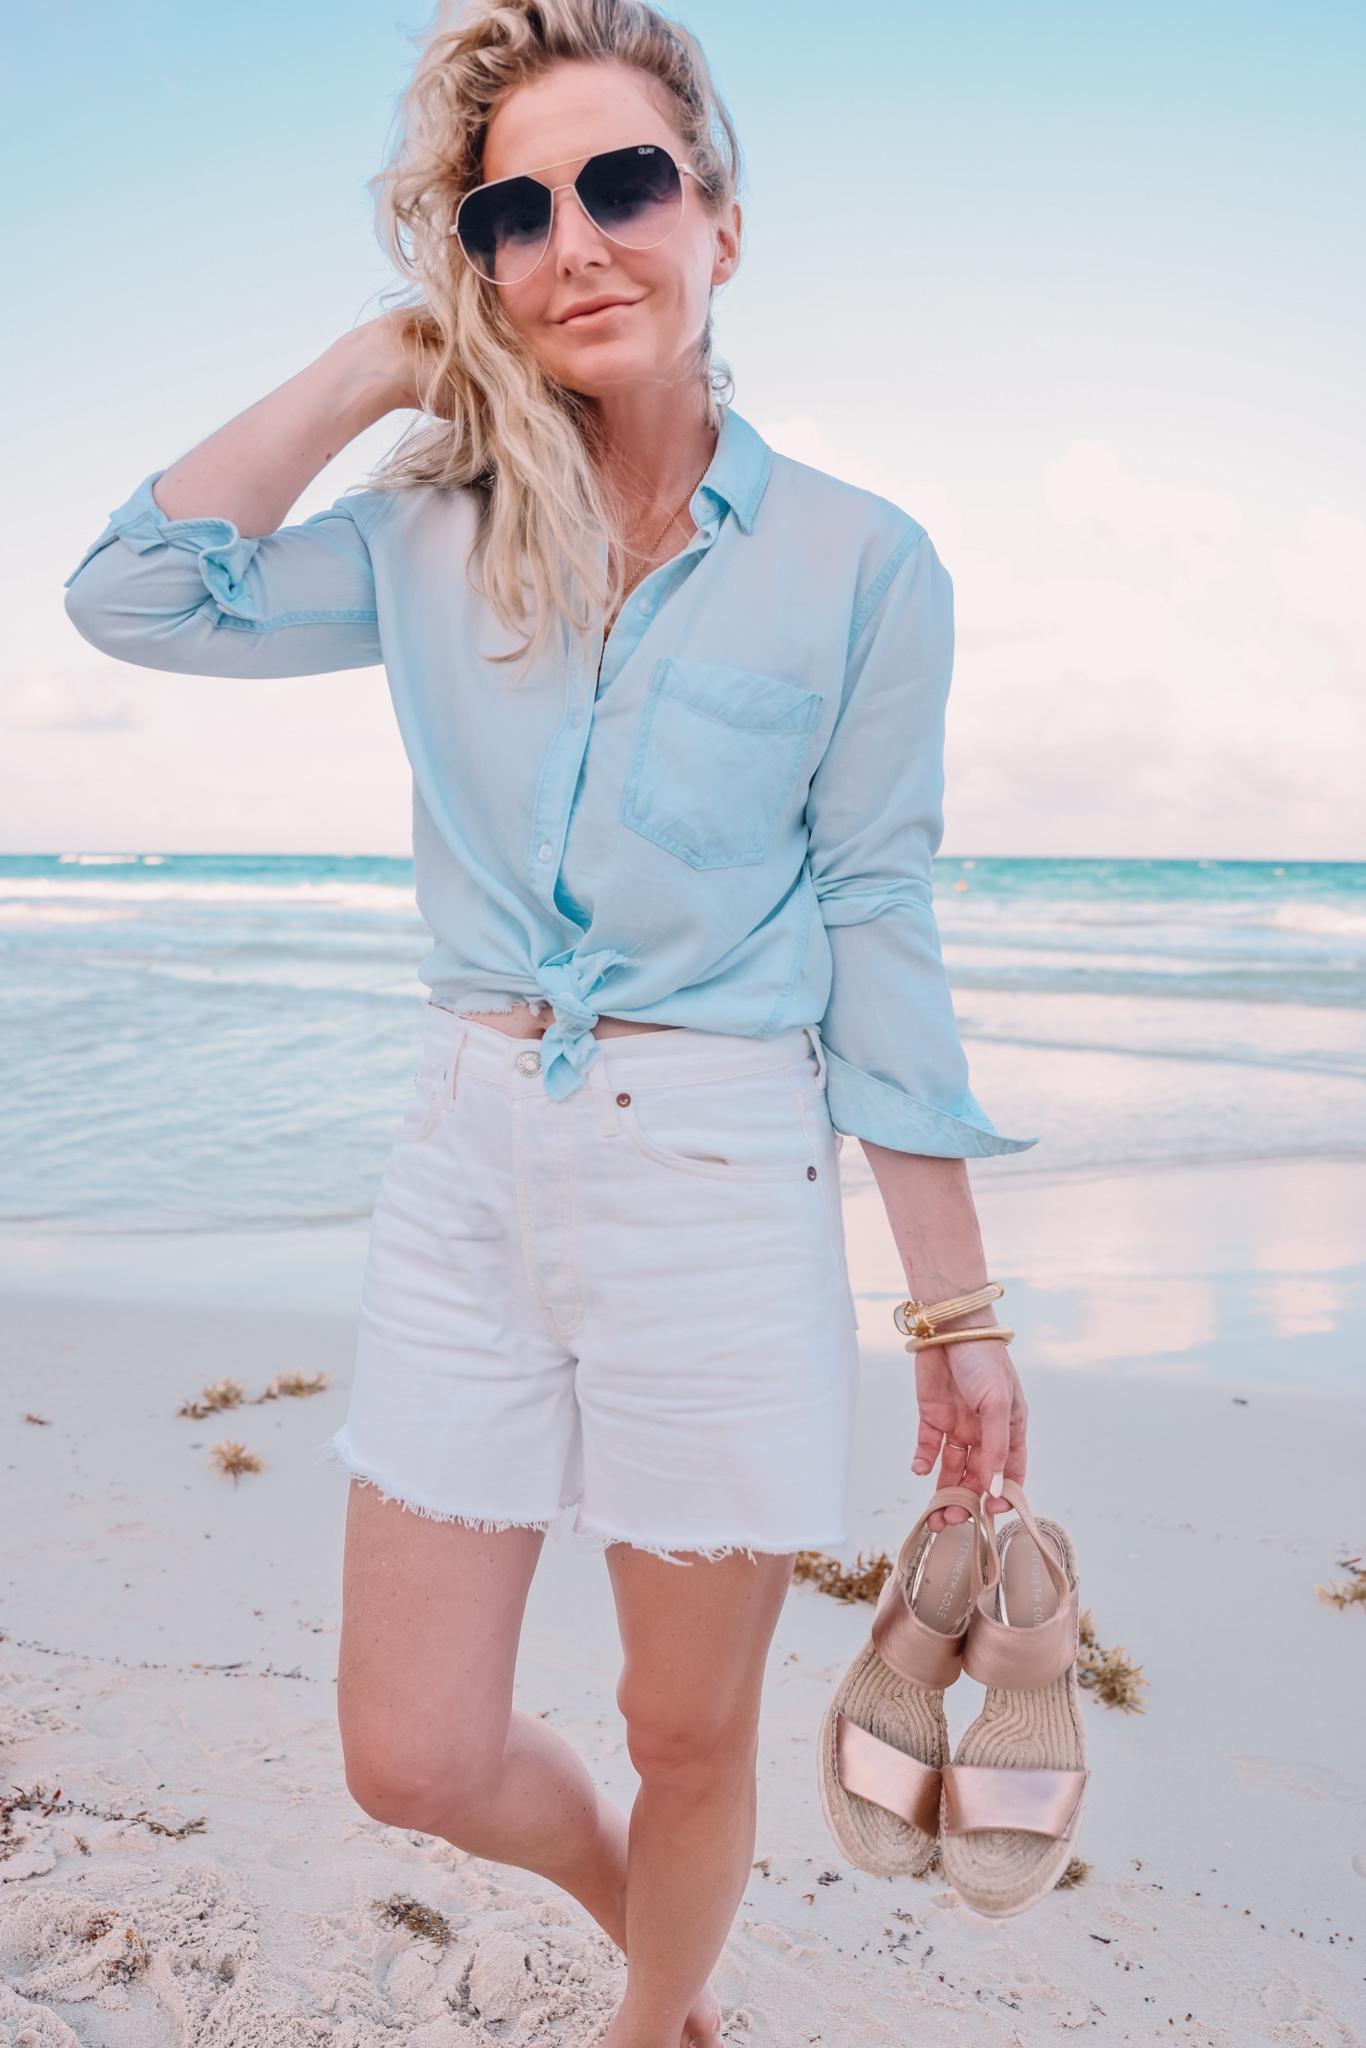 button down shirts, rails button down, chambray shirt, rails chambray shirt, white agolde jean shorts, white agolde denim shorts, denim shorts over 40, how to wear a button down, button down shirts for summer, best button down shirts, blouses that cover arms